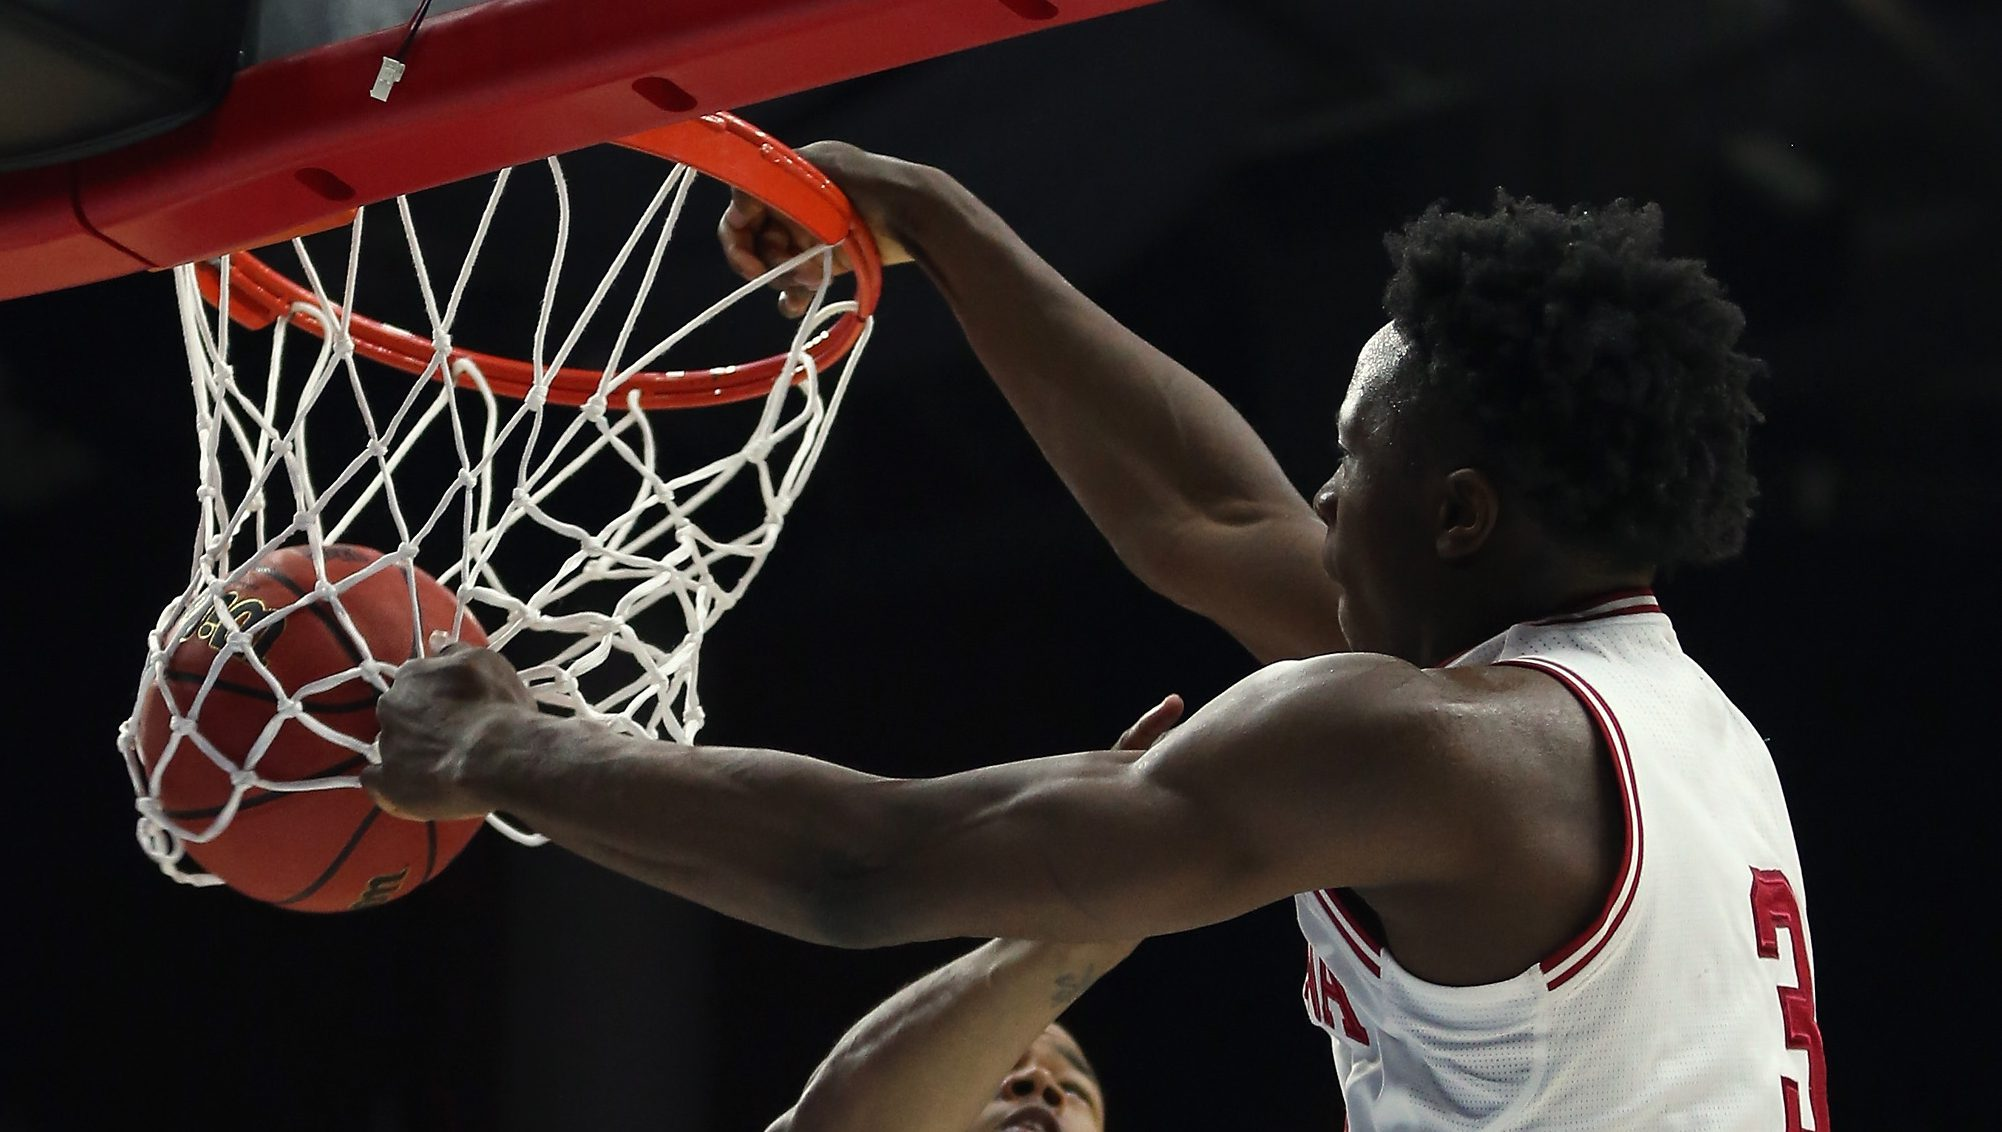 DES MOINES, IA - MARCH 17: OG Anunoby #3 of the Indiana Hoosiers shoots a reverse dunk over Chuck Ester #0 of the Chattanooga Mocs in the second half during the first round of the 2016 NCAA Men's Basketball Tournament at Wells Fargo Arena on March 17, 2016 in Des Moines, Iowa. (Photo by Jonathan Daniel/Getty Images)